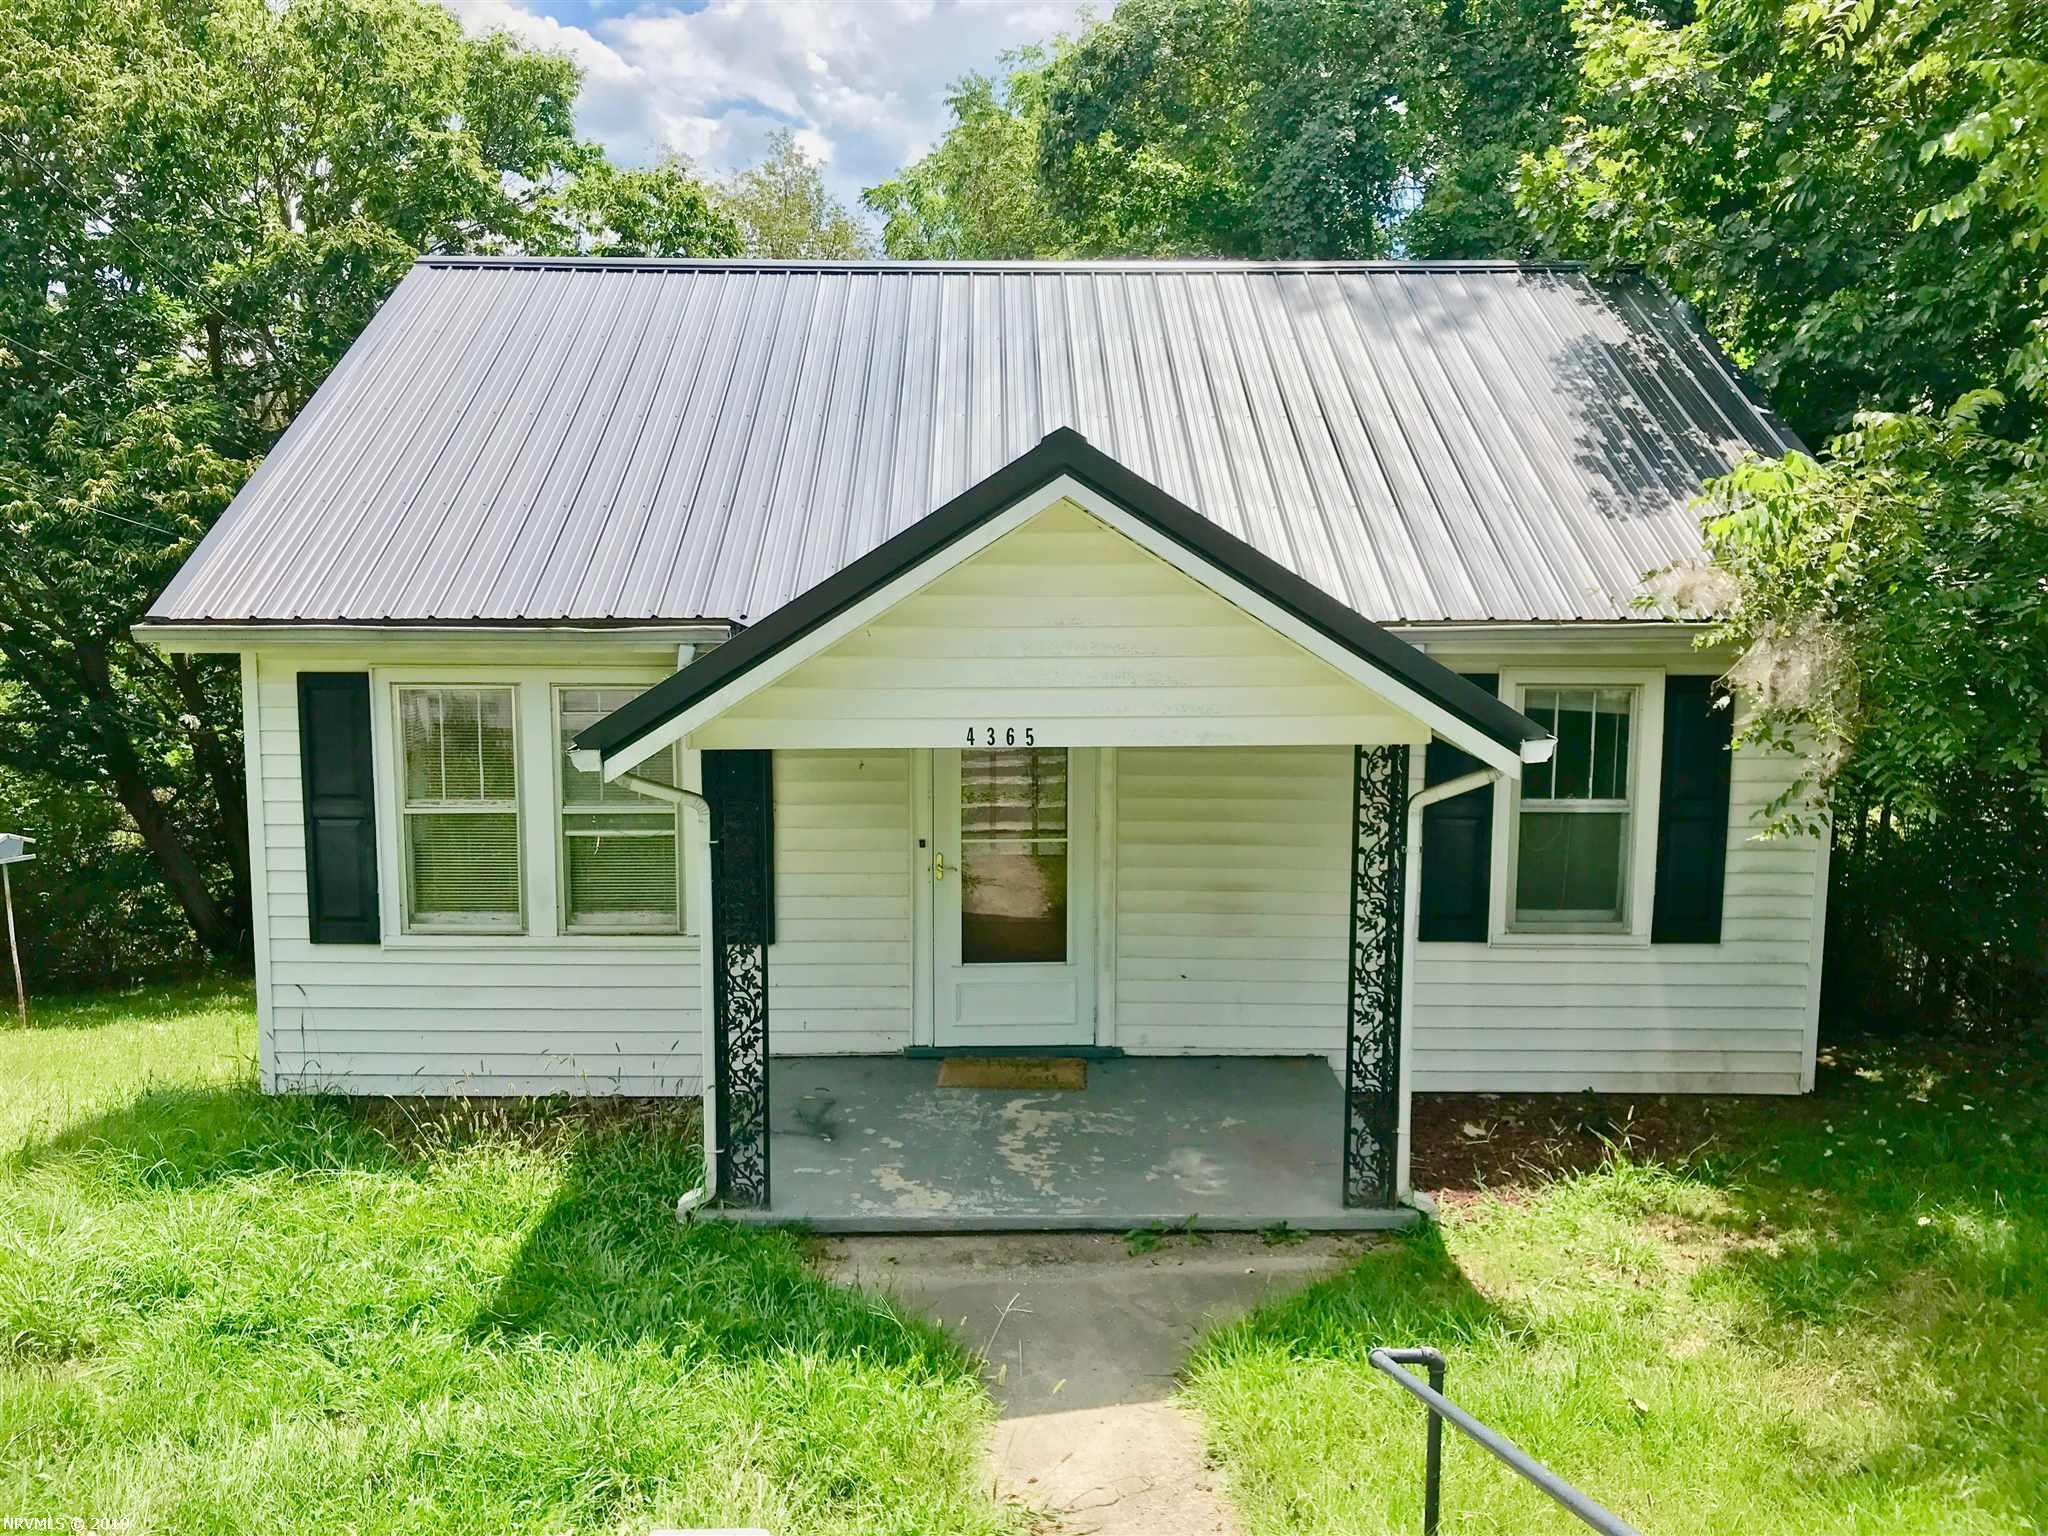 Excellent opportunity to make improvements for an investor. Bungalow style cottage in Pulaski VA with hardwood floors, ceramic tiled bath, ceiling fans, storm doors and a storage shed. Spacious kitchen offers an appliance package, plenty of cabinet and counter space, plus a pantry. Two main level bedrooms and a full bath including a spa tub. The basement has outside access and laundry area.  Situated on a lot with mature trees and a deck to enjoy the views. Sold as-is where is!